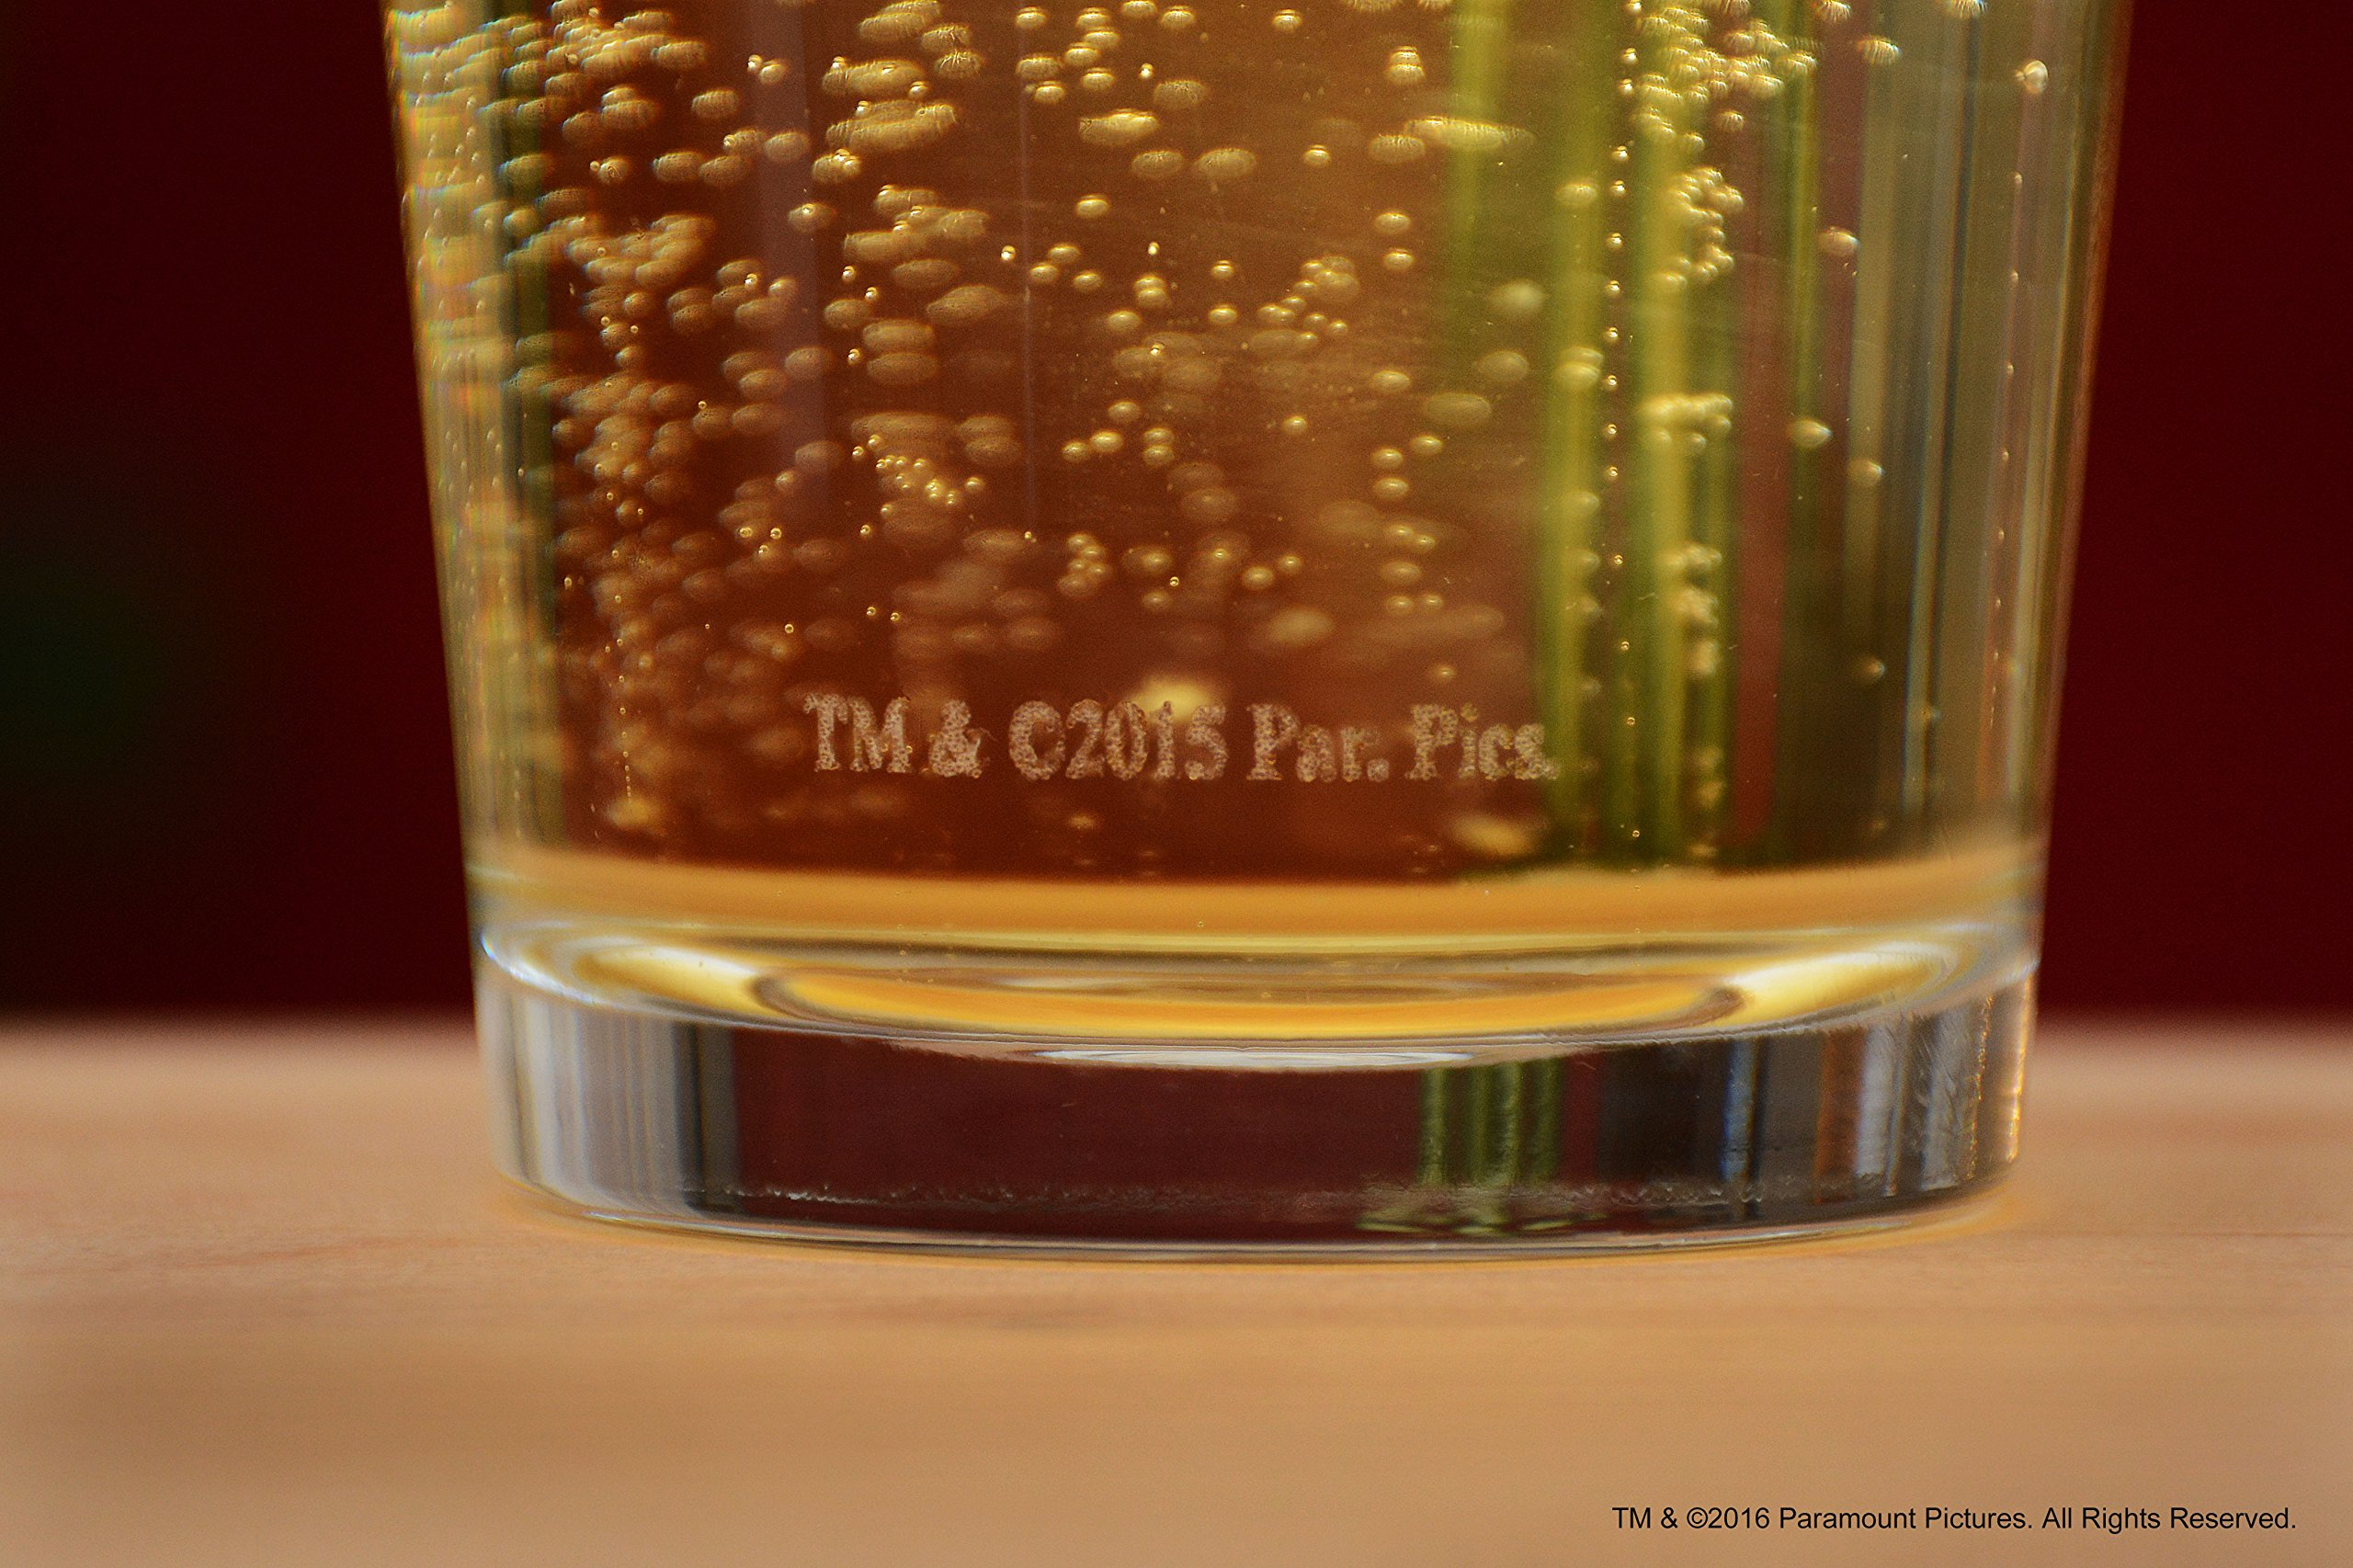 The Godfather Movie Pint Glass Godparent Gift Officially Licensed Collectible Premium Etched By Movies On Glass 16…